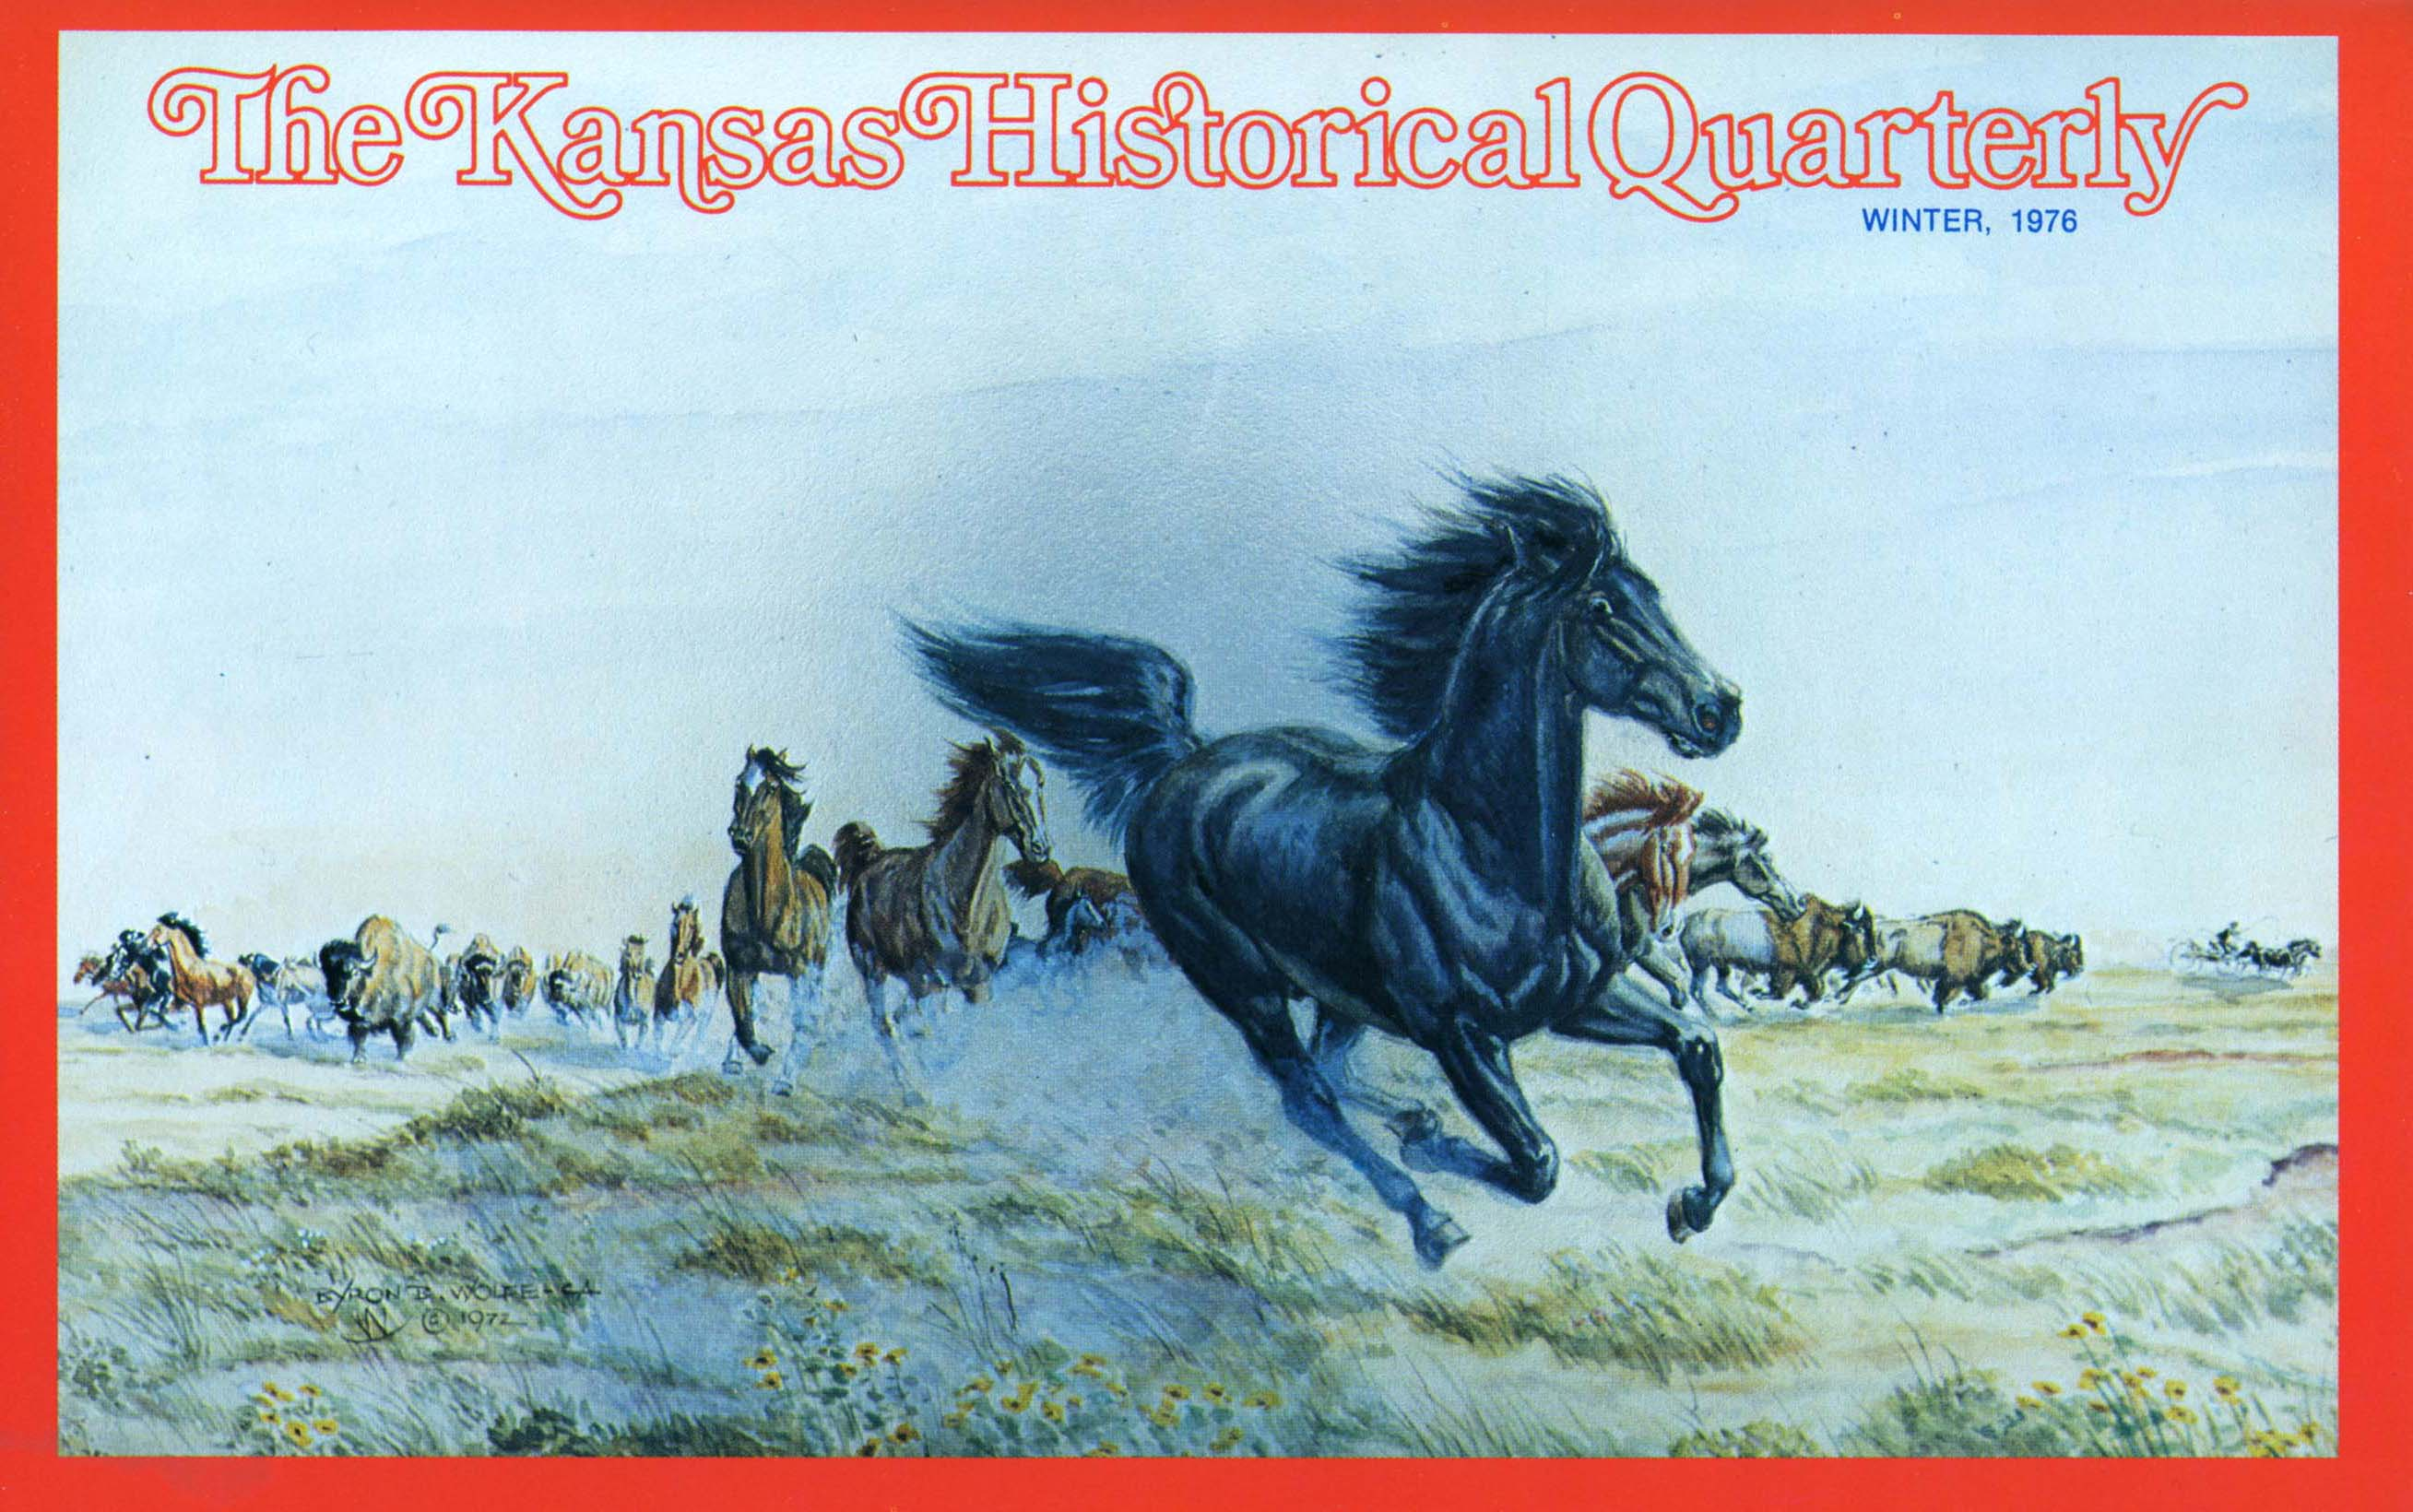 Kansas Historical Quarterly, Winter 1976